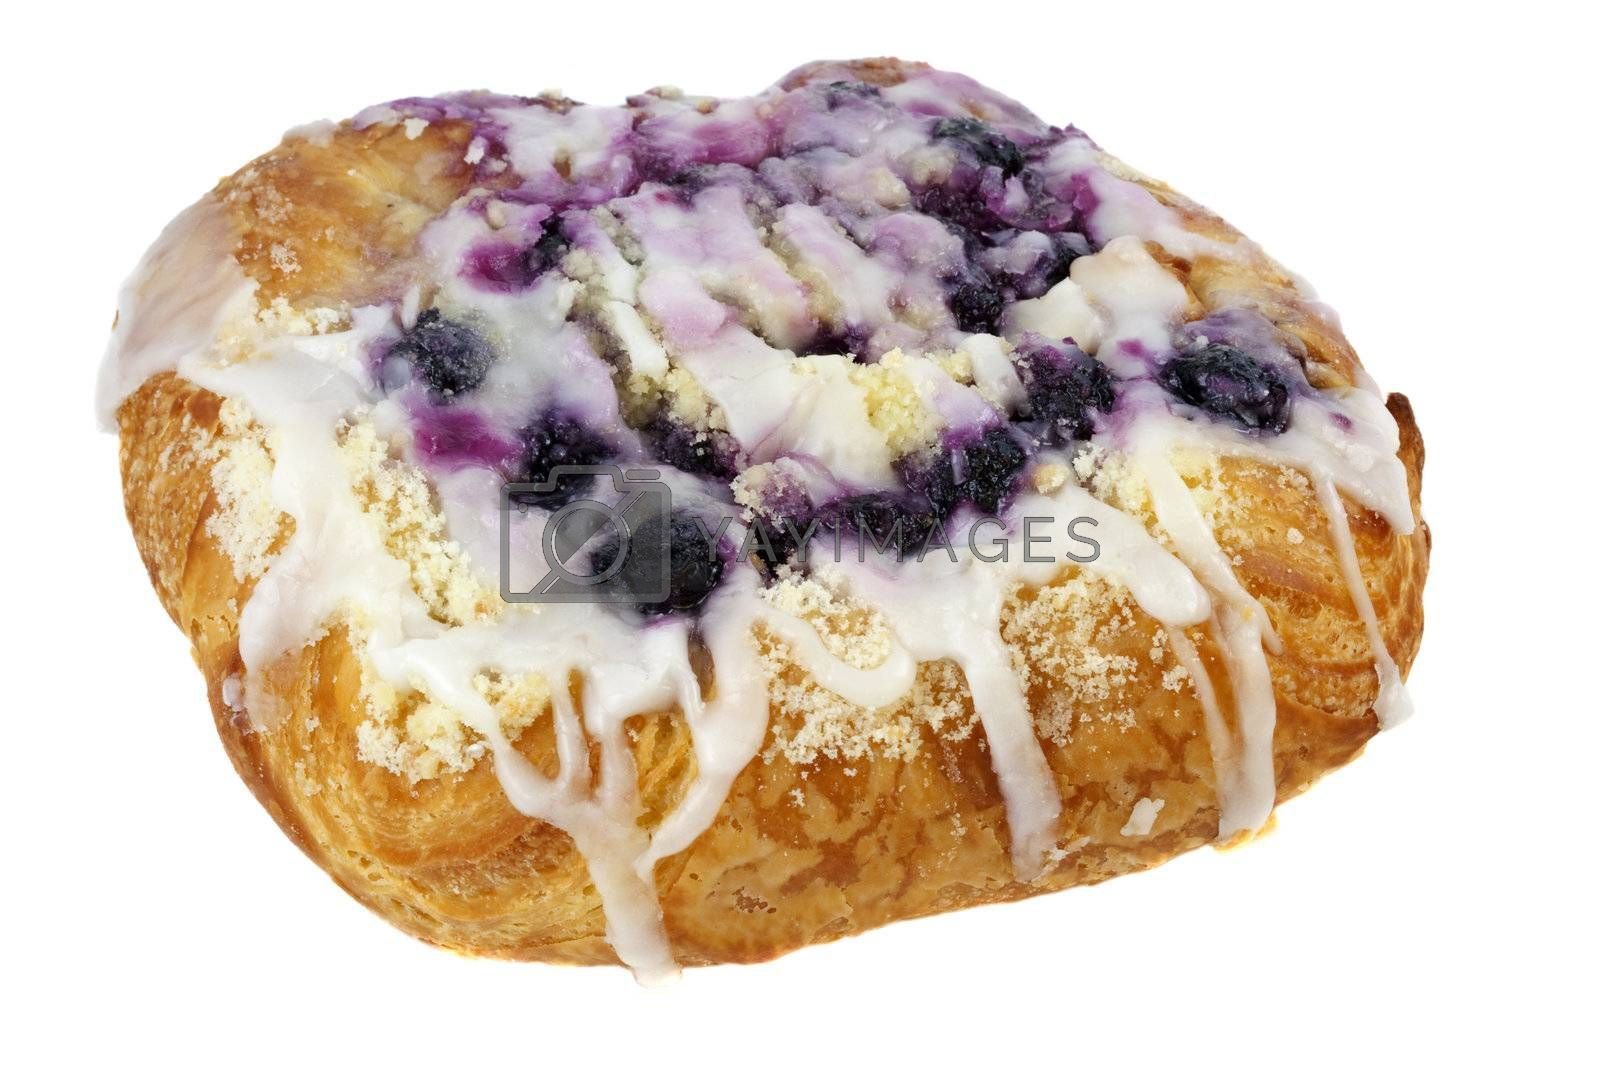 blueberry cheese danish pastry by PixelsAway